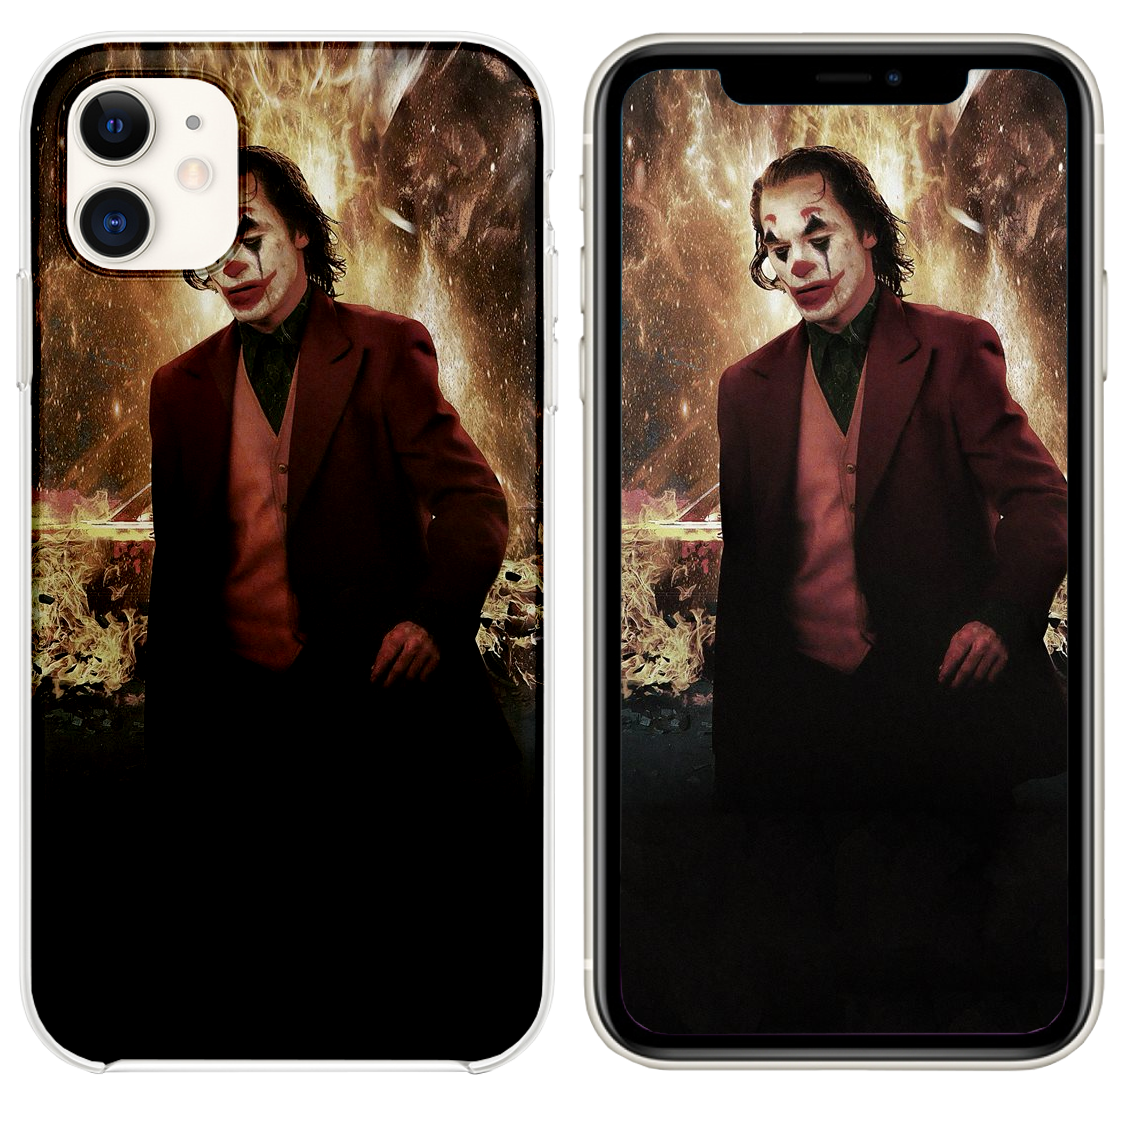 Terkeren 30 Joker Wallpaper 4k Iphone Xs Max